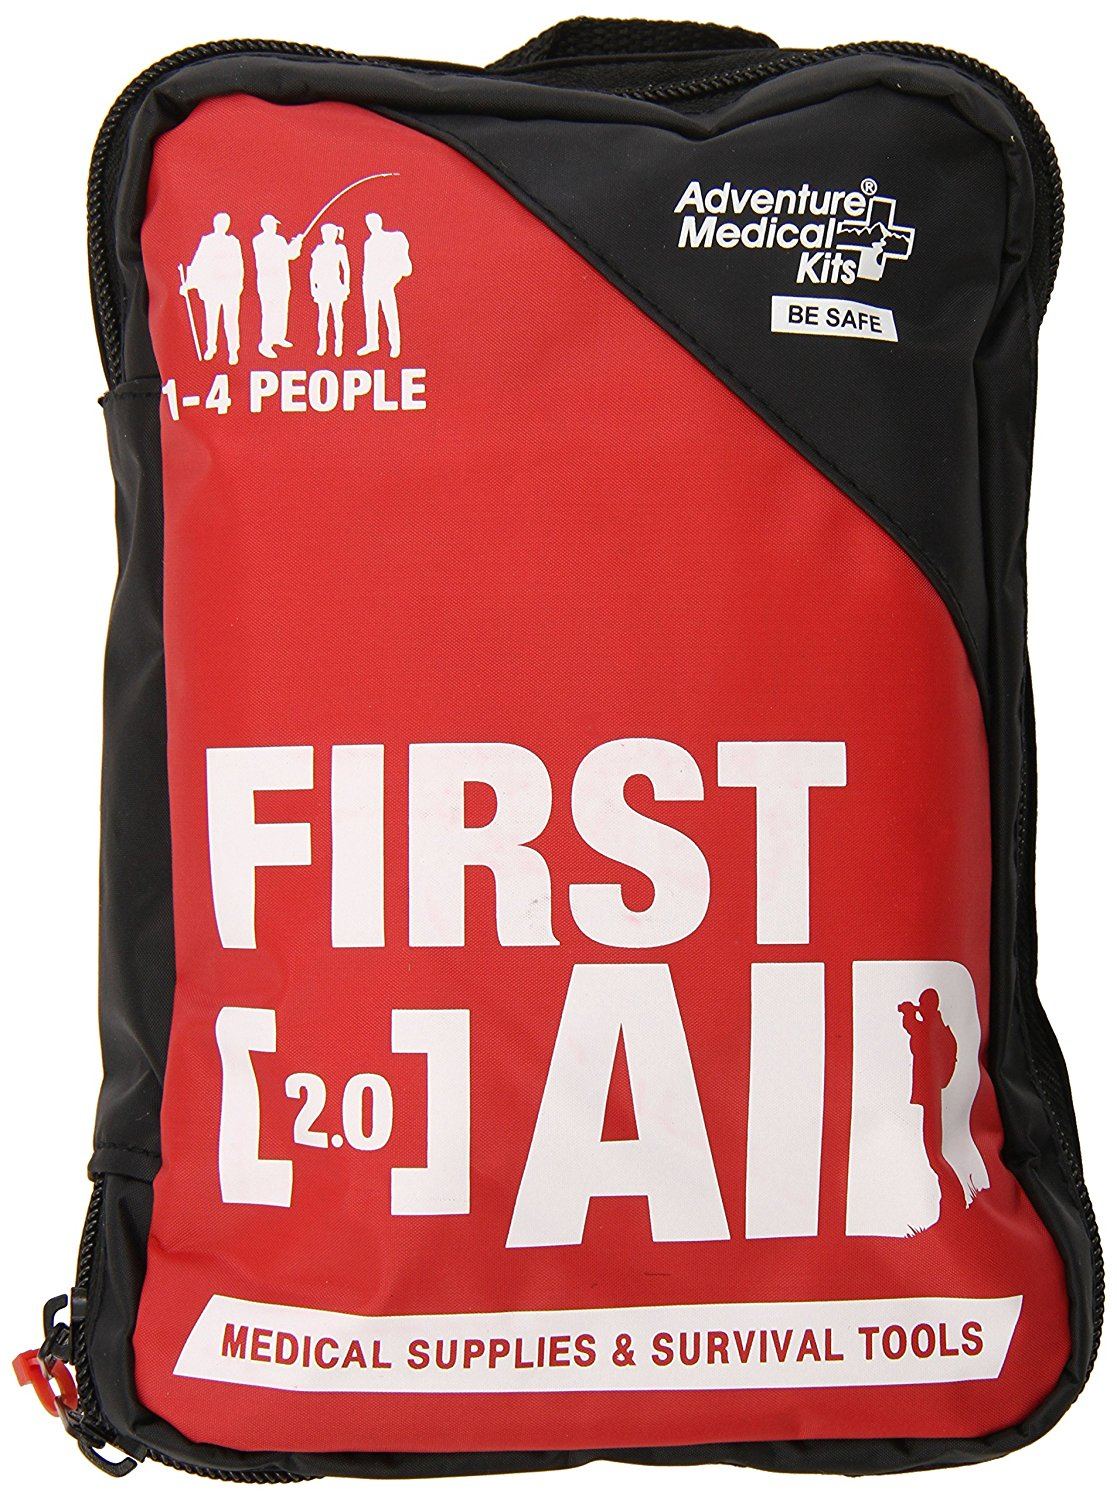 Adventure First Aid 2.0, Ship from USA, Brand Adventure Medical Kits by